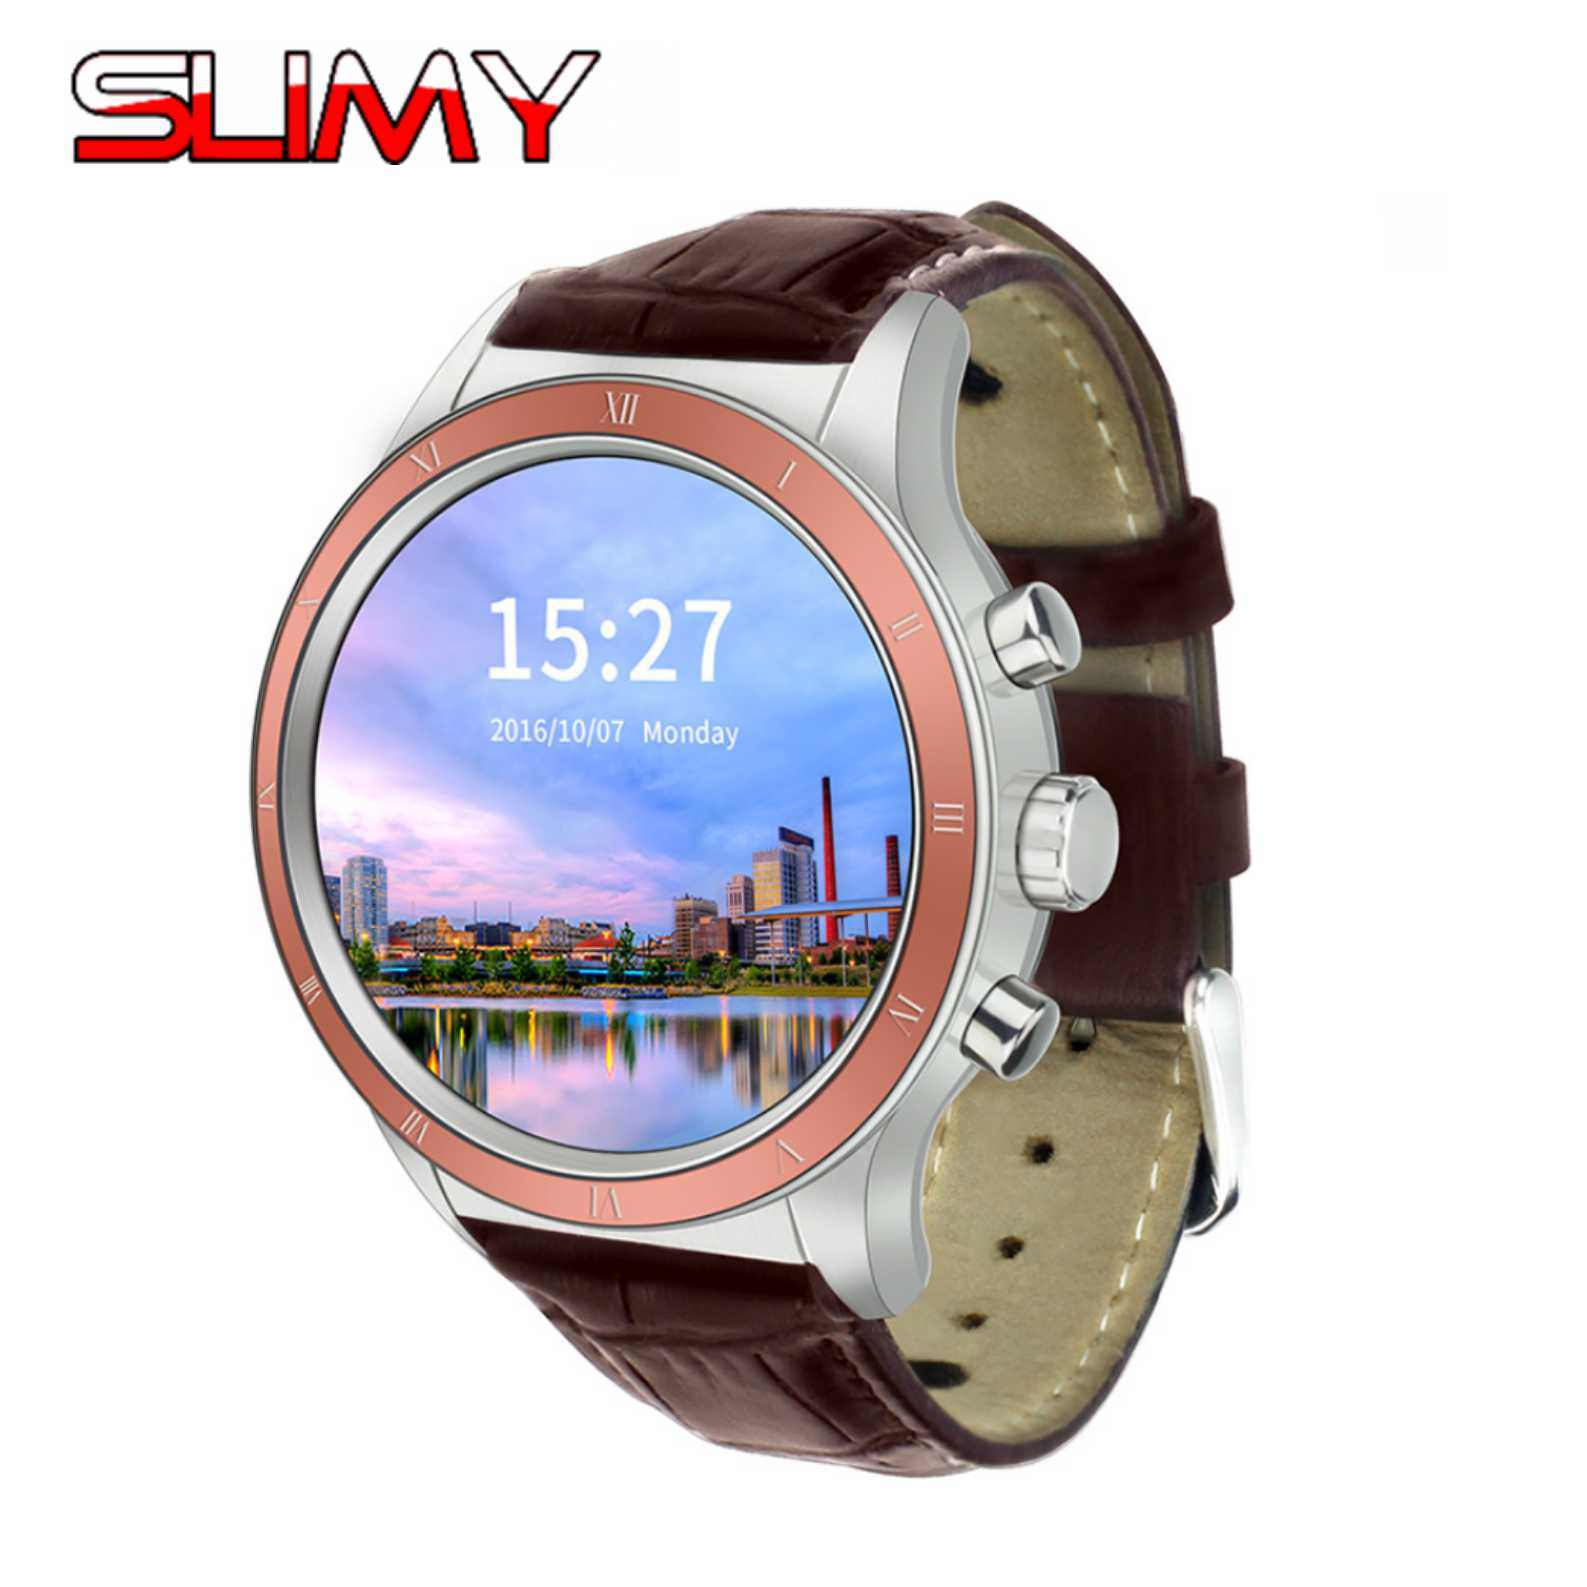 Slimy Y3 Smart Watch Android 5.1 OS Quad Core MTK6580 512MB+4GB Support GPS WIFI SIM 3G Smartwatch Phone for Android OS Phone smart baby watch q60s детские часы с gps голубые